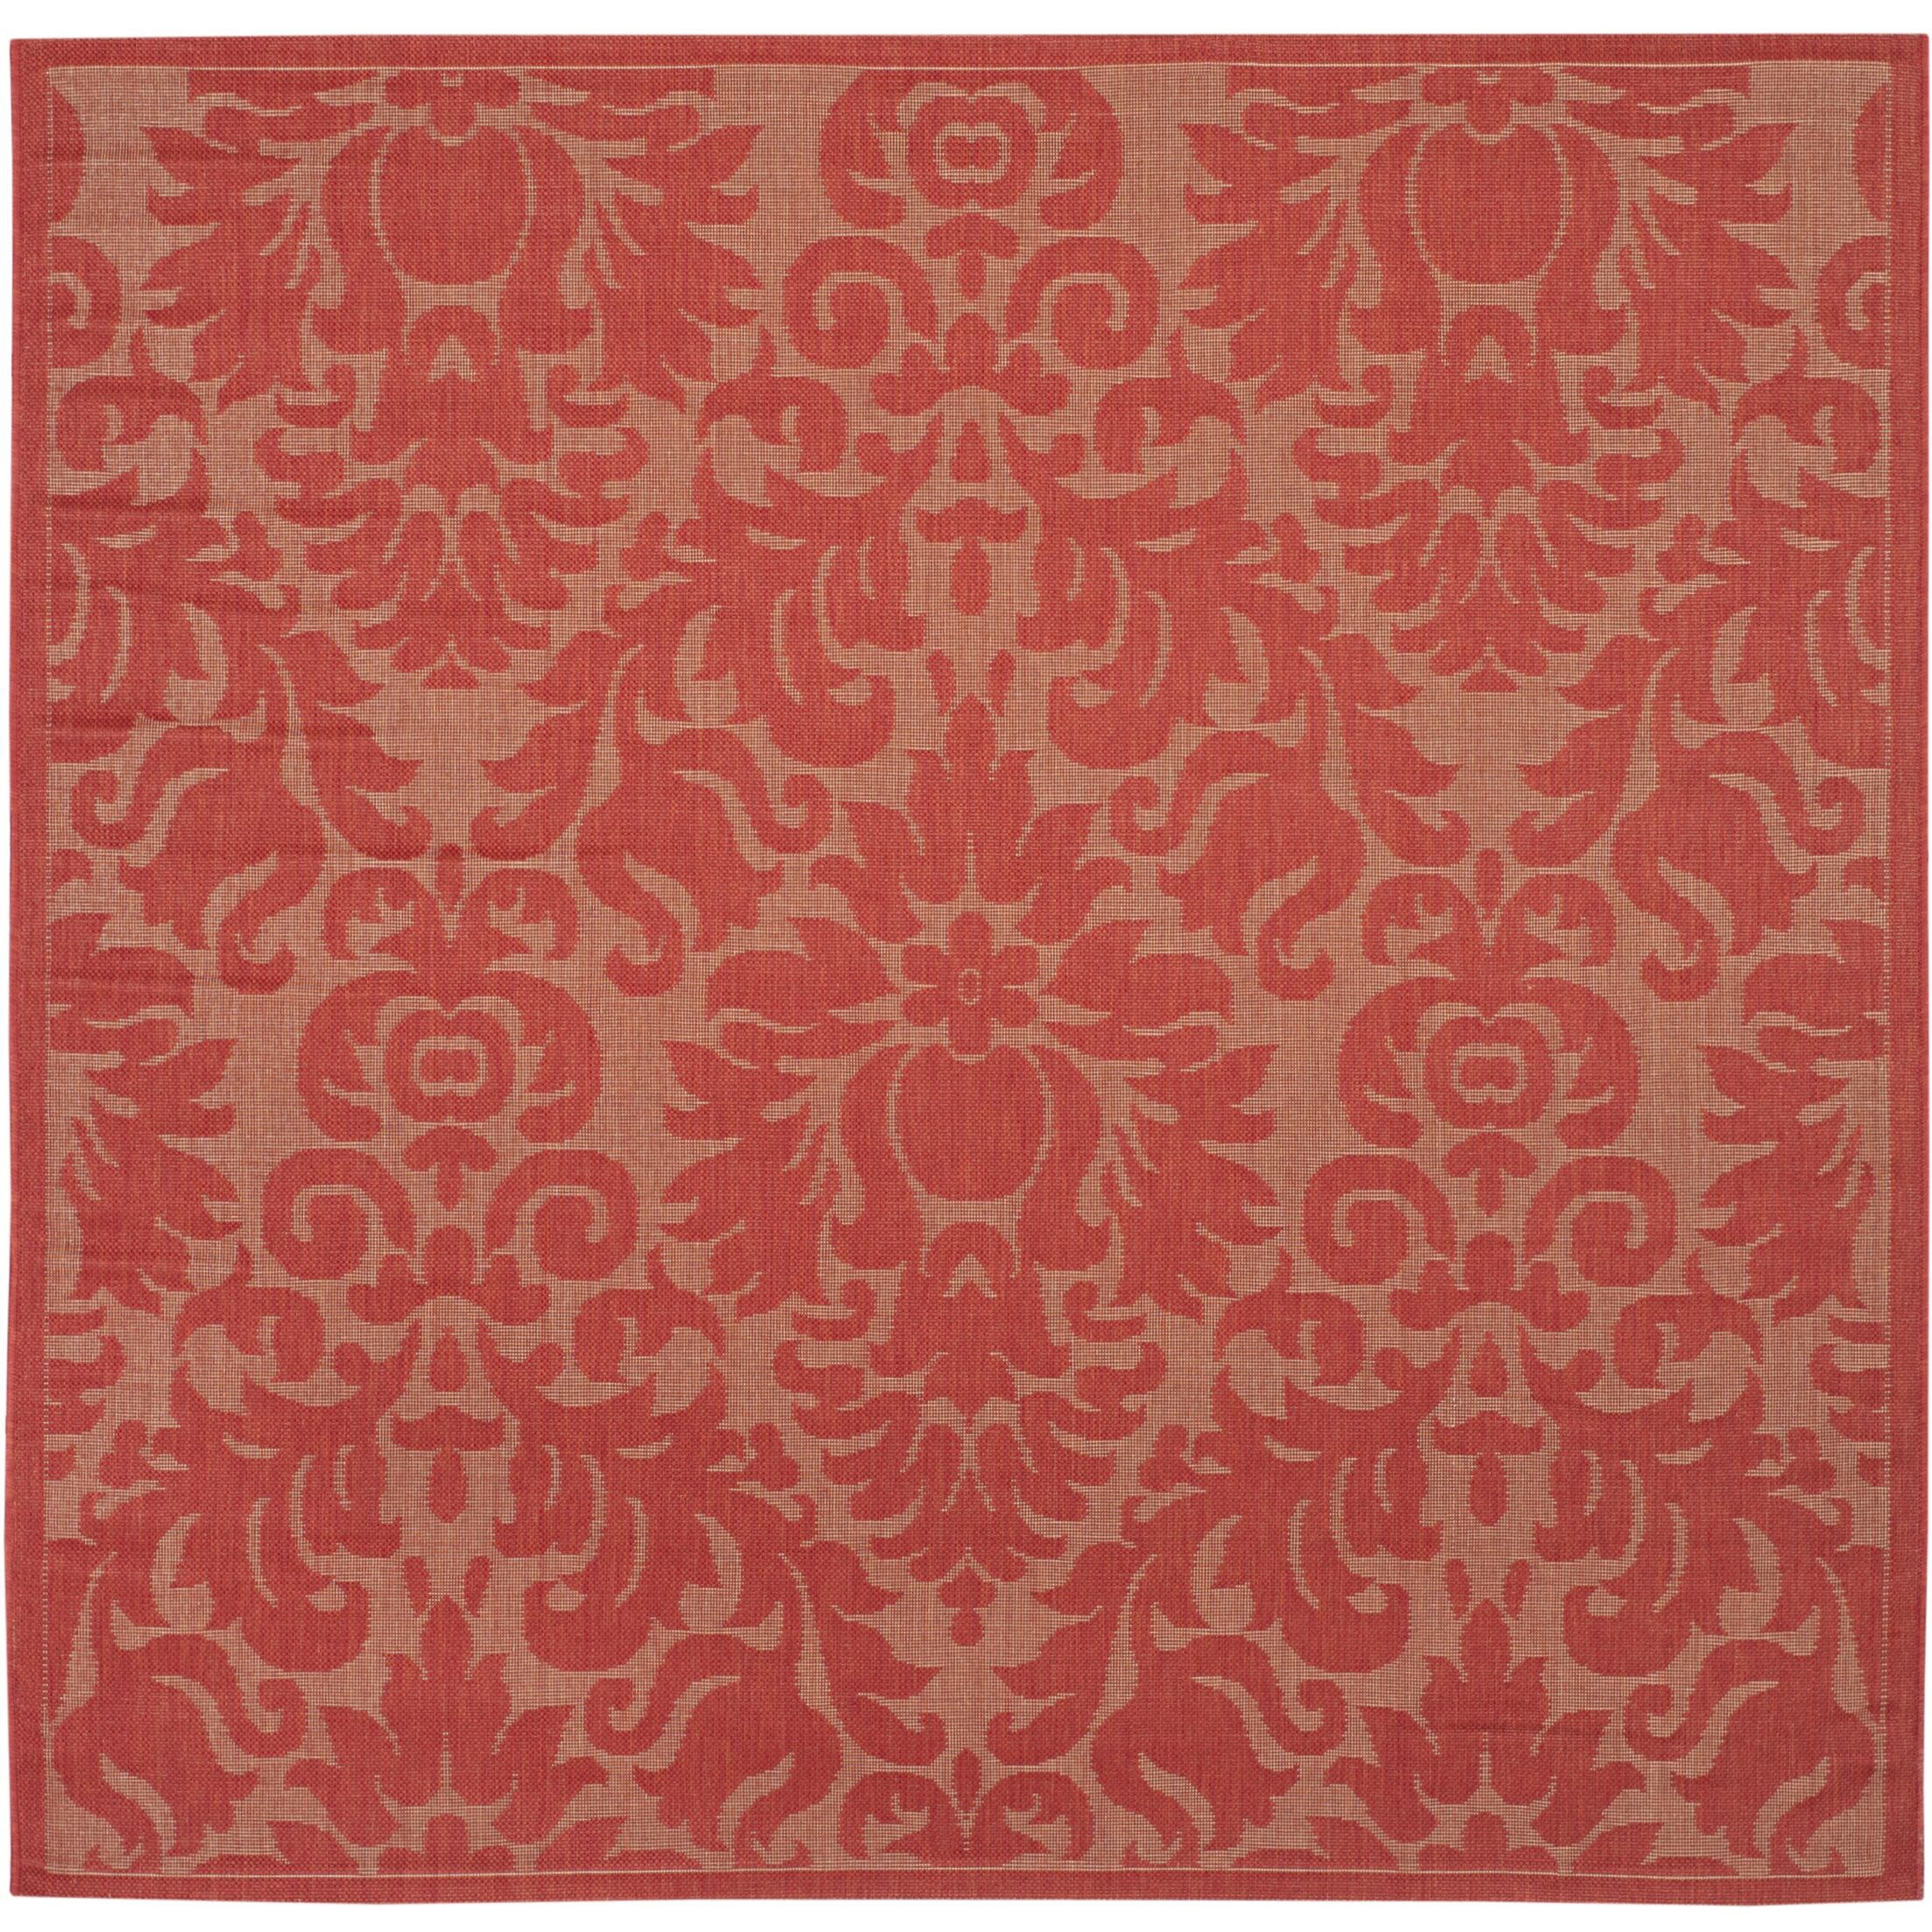 Catori Red Solid Outdoor Area Rug Rug Size: Rectangle 5'3